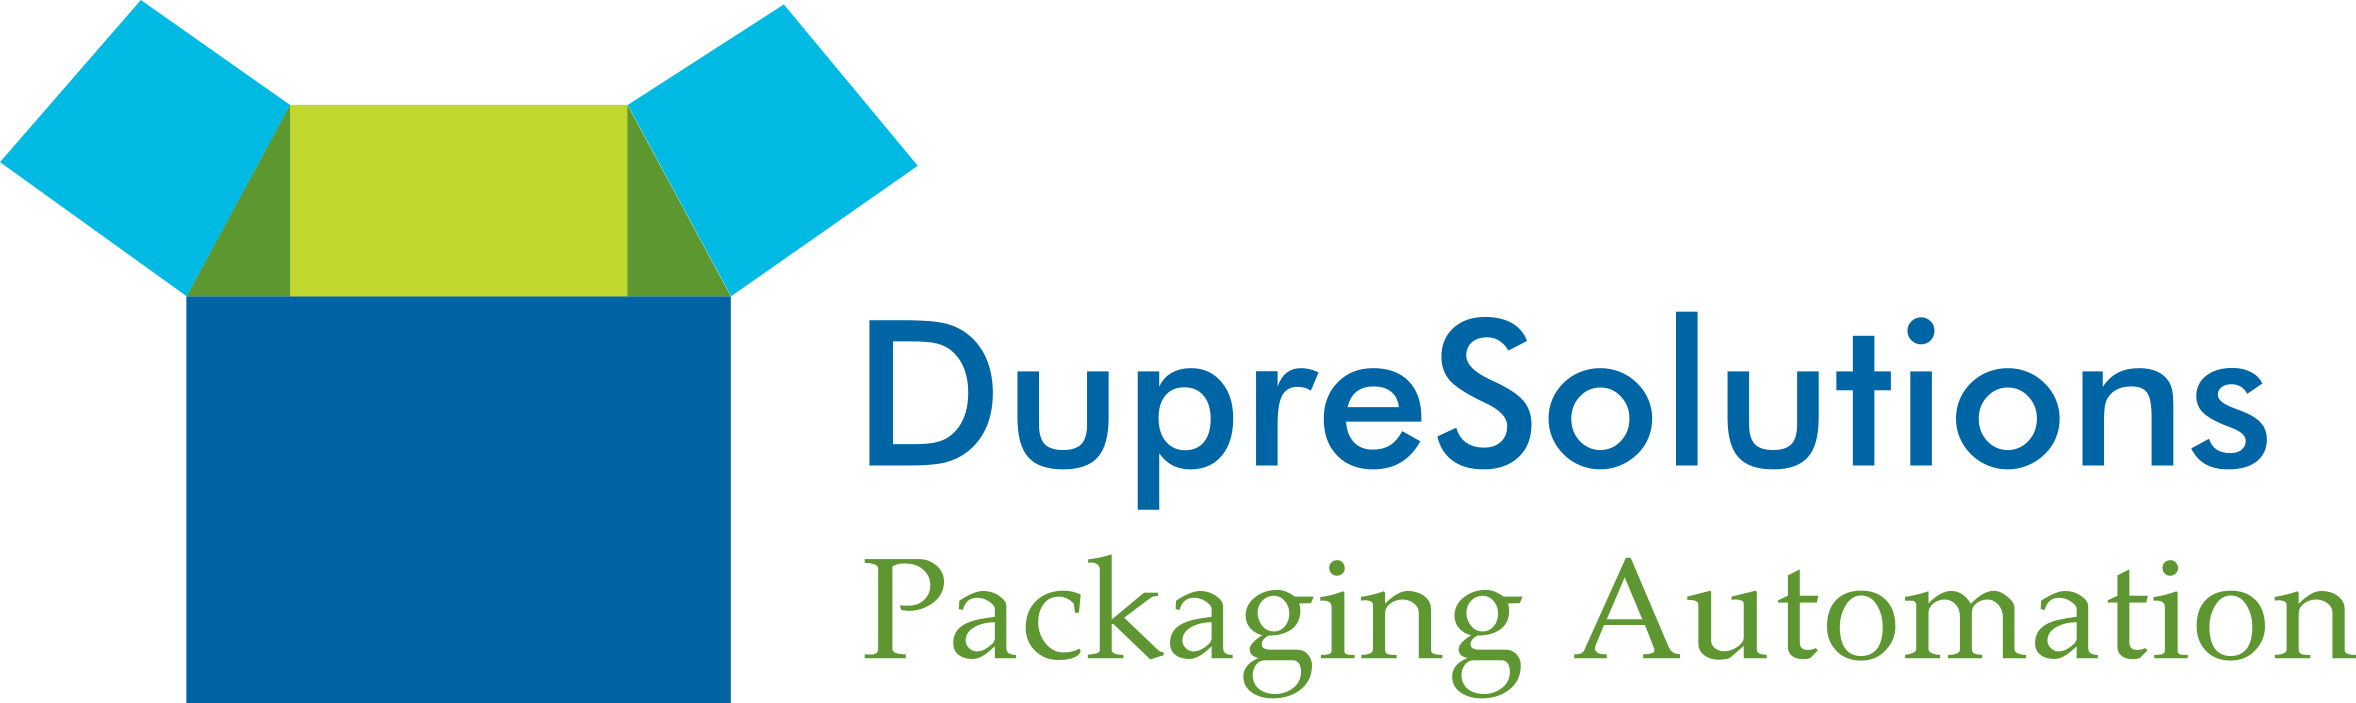 DupreSolutions Packaging Automation